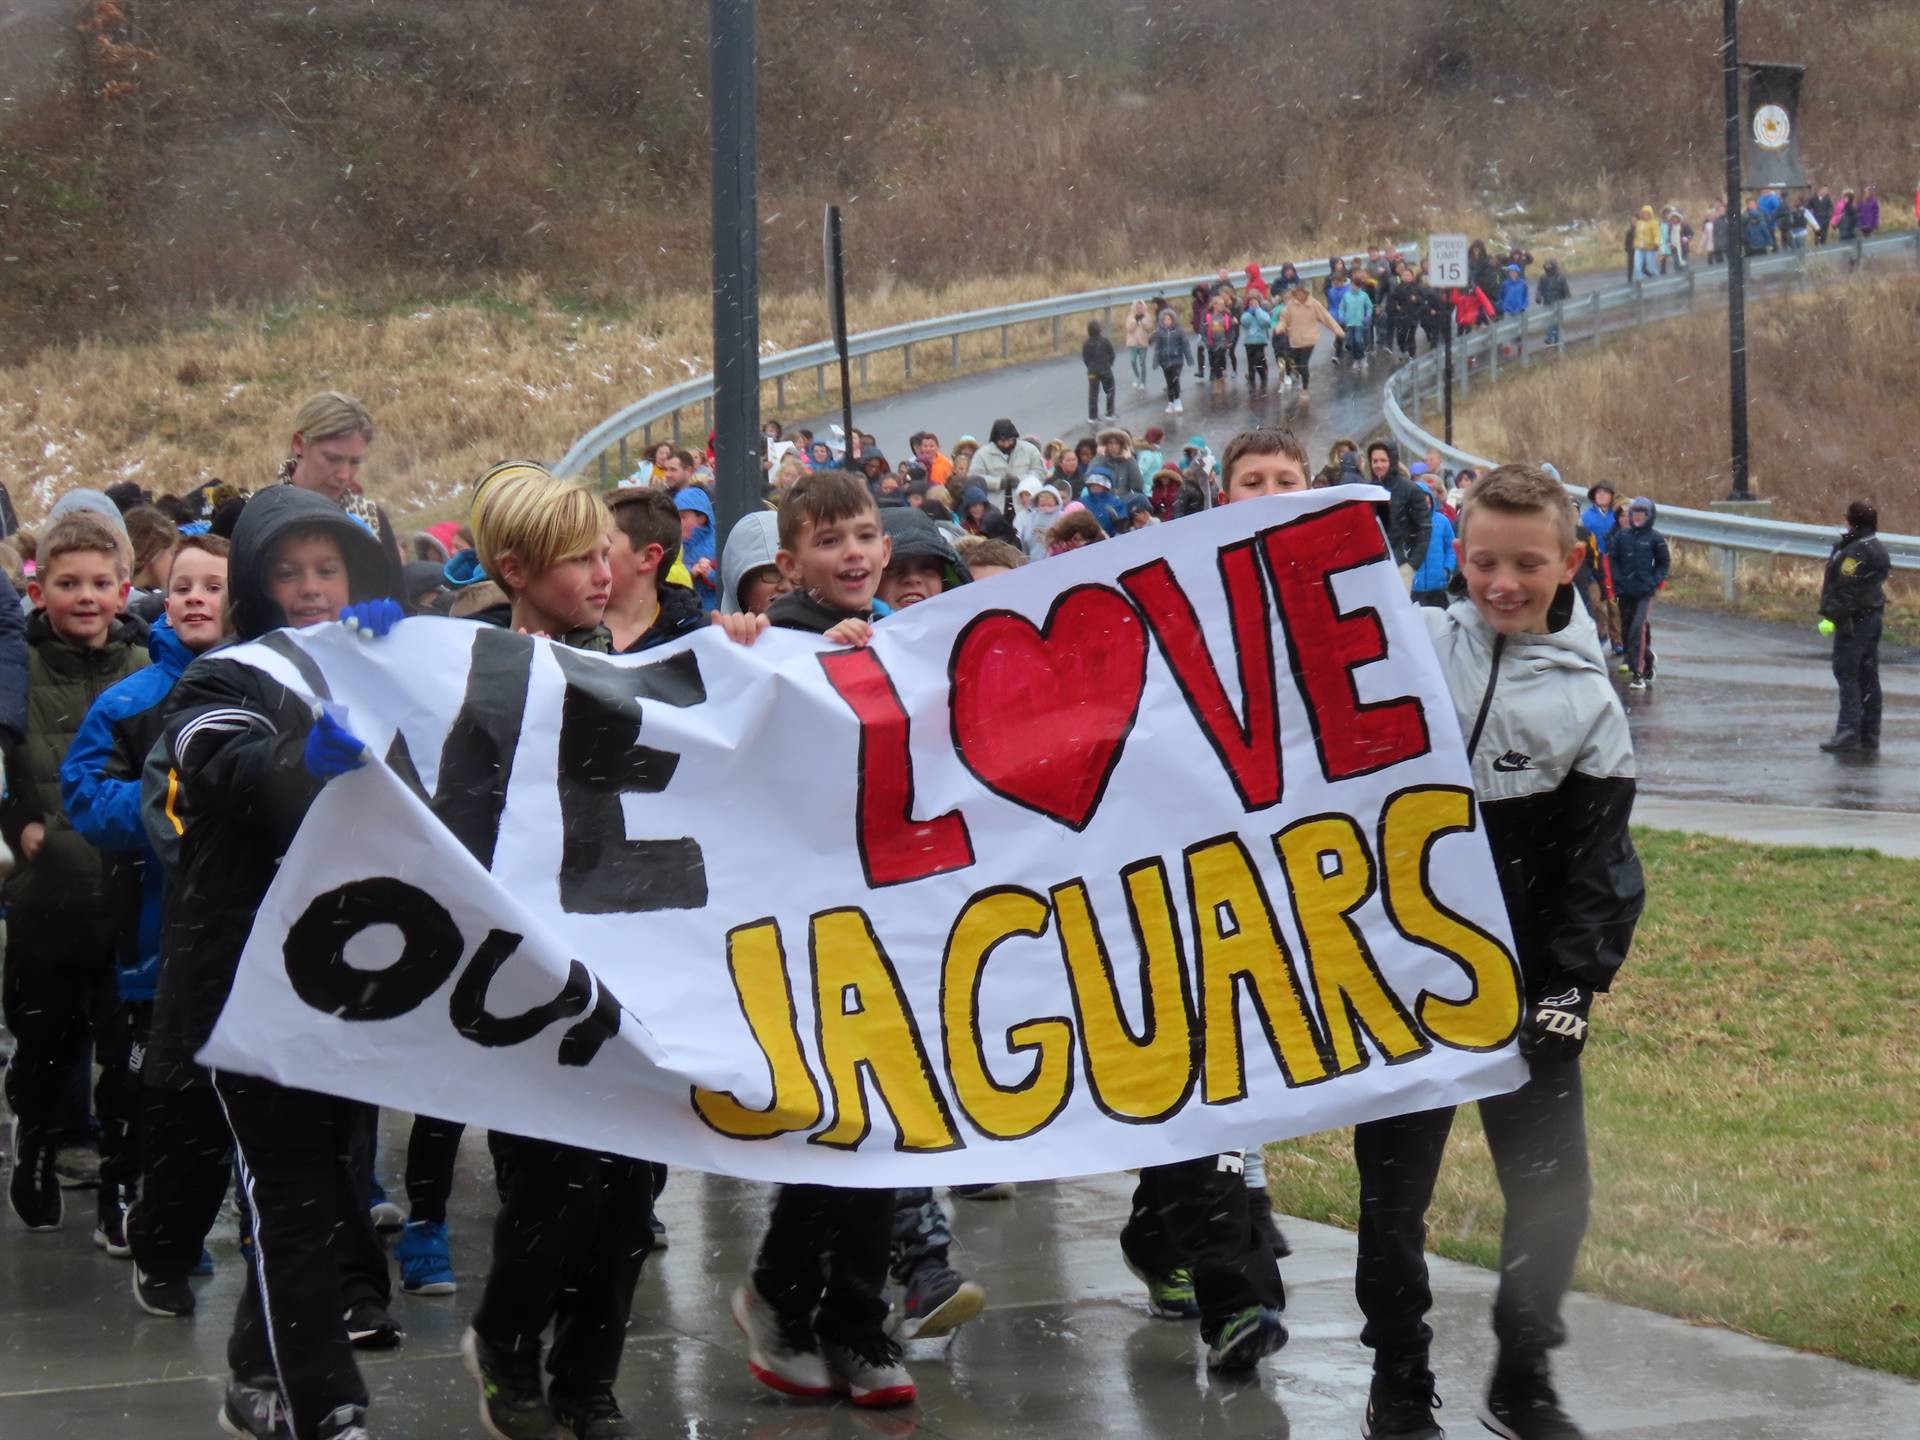 JHIS Students walking to TJHS with banner